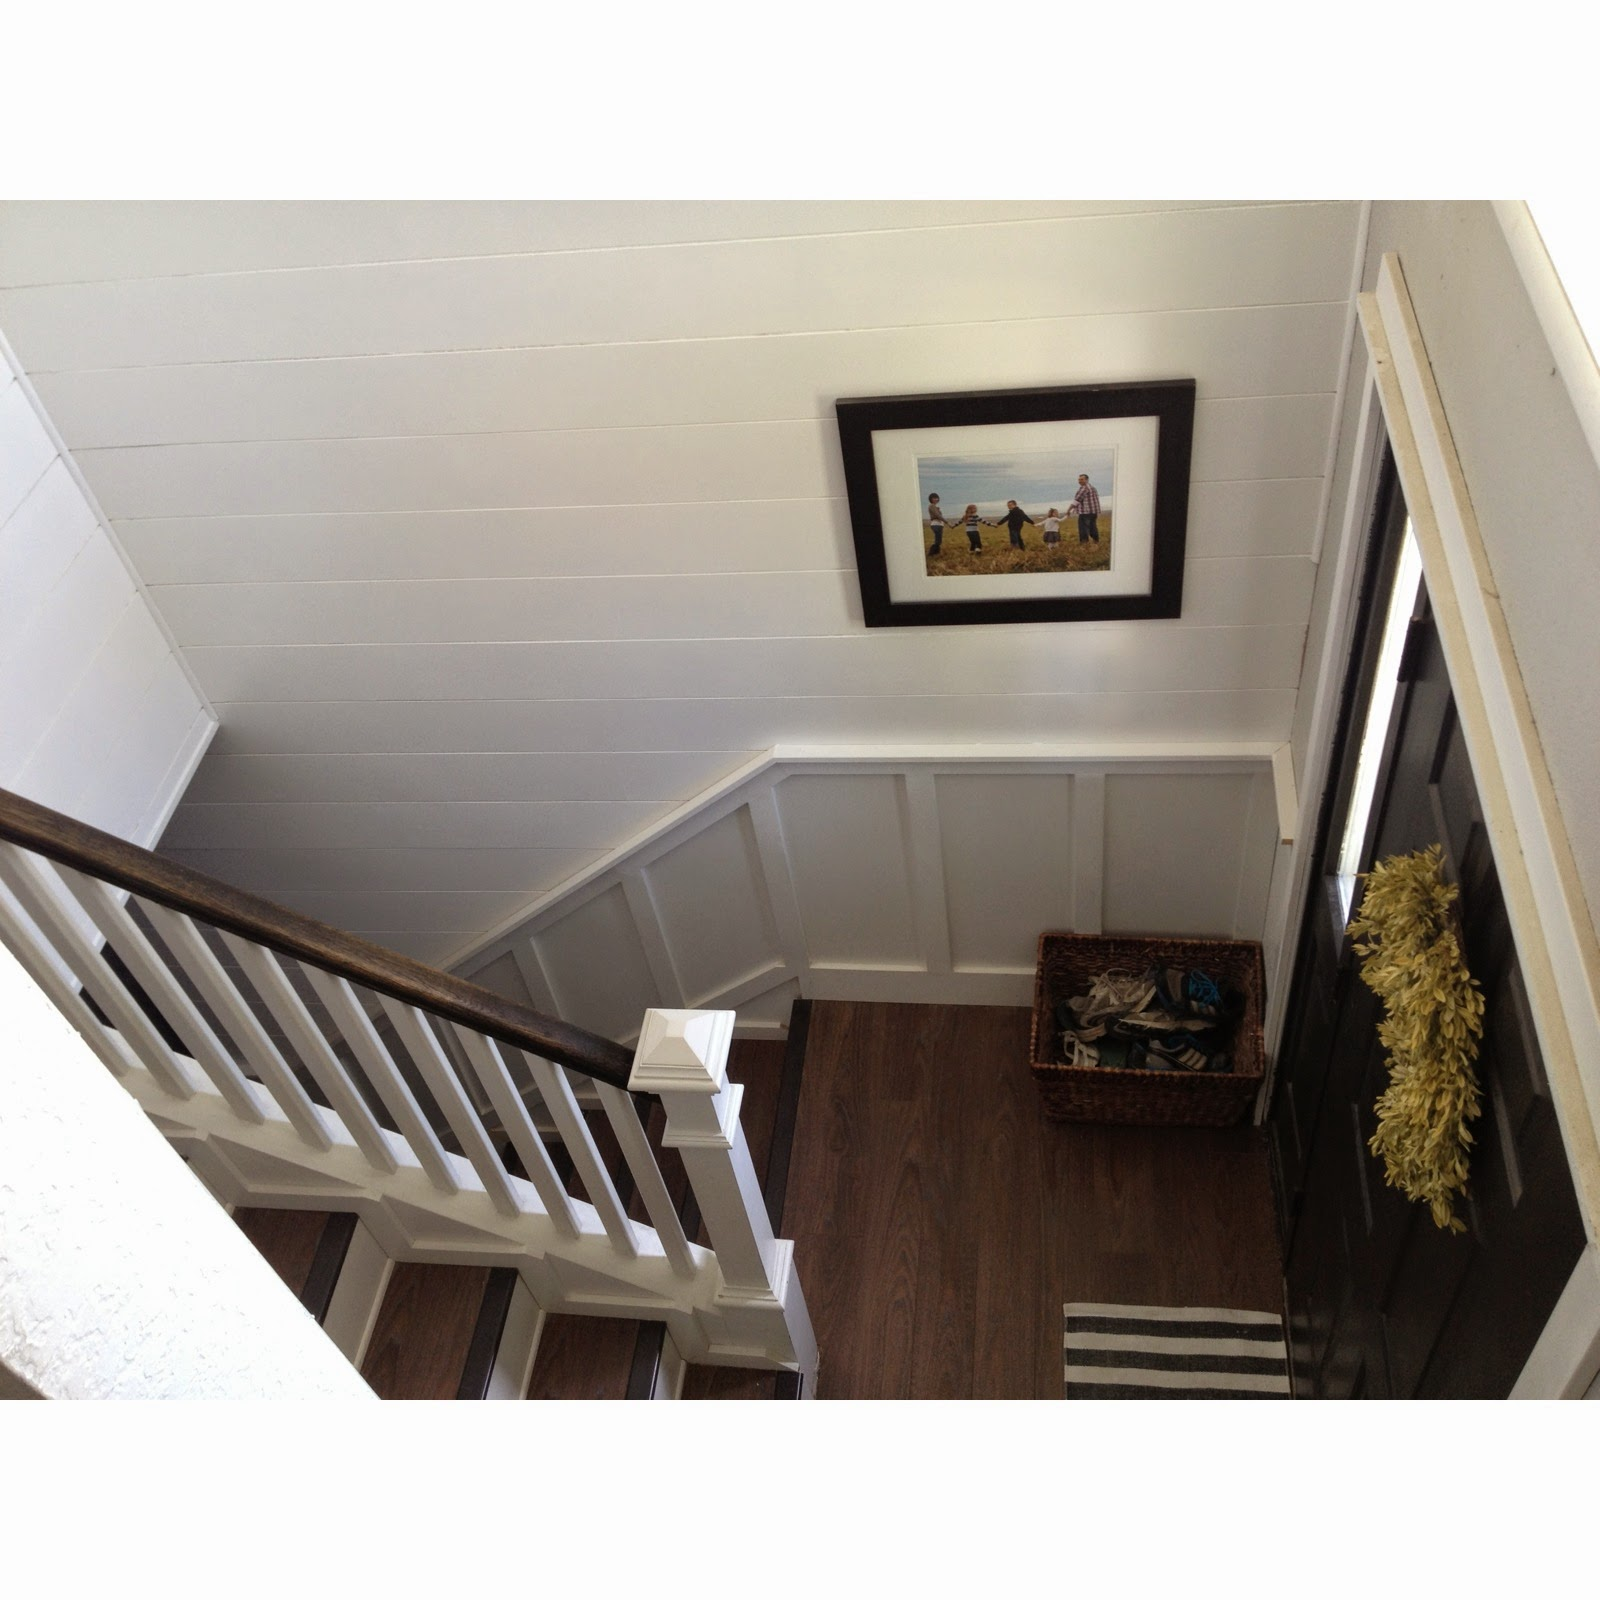 Keep Home Simple: A New Plank Wall in the Entry Way